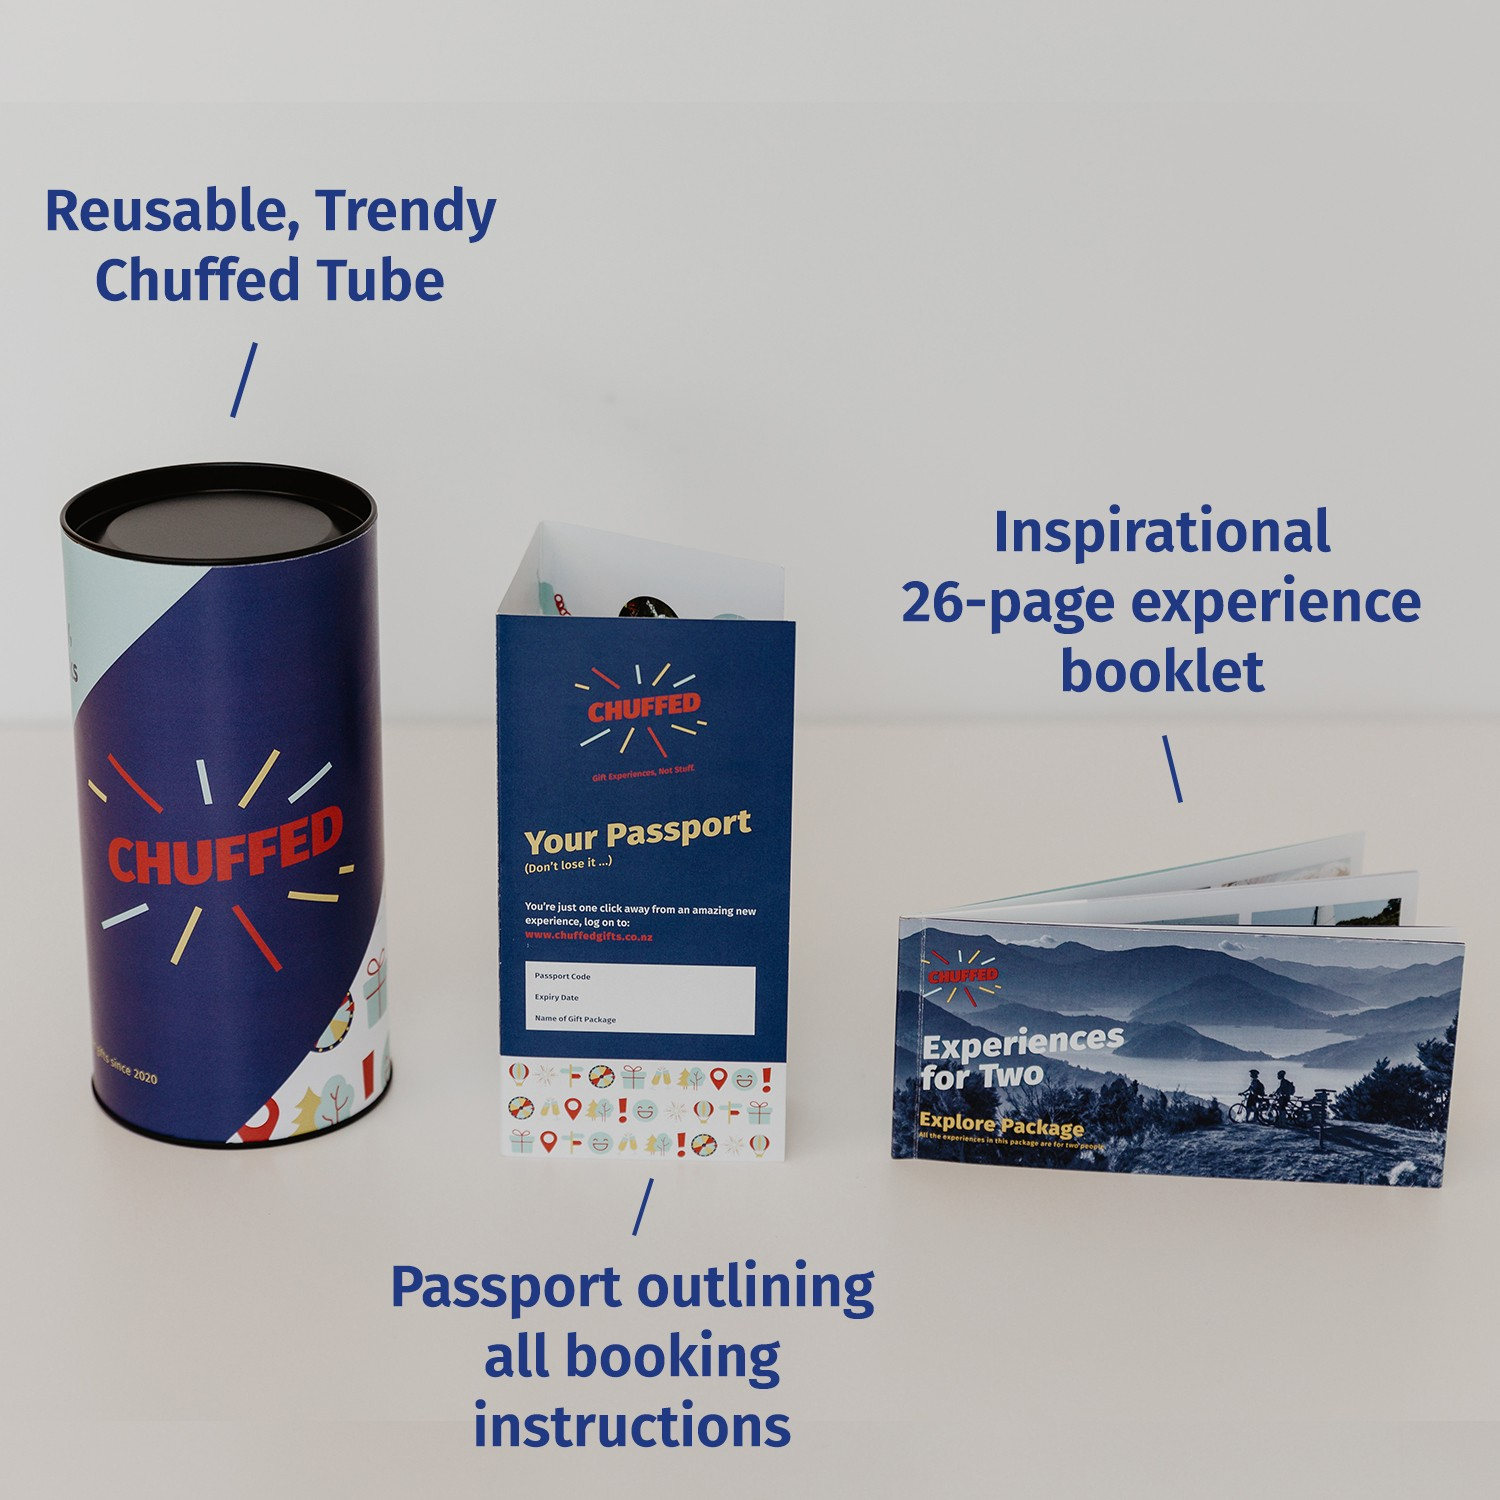 Experiences For Two Explore Package